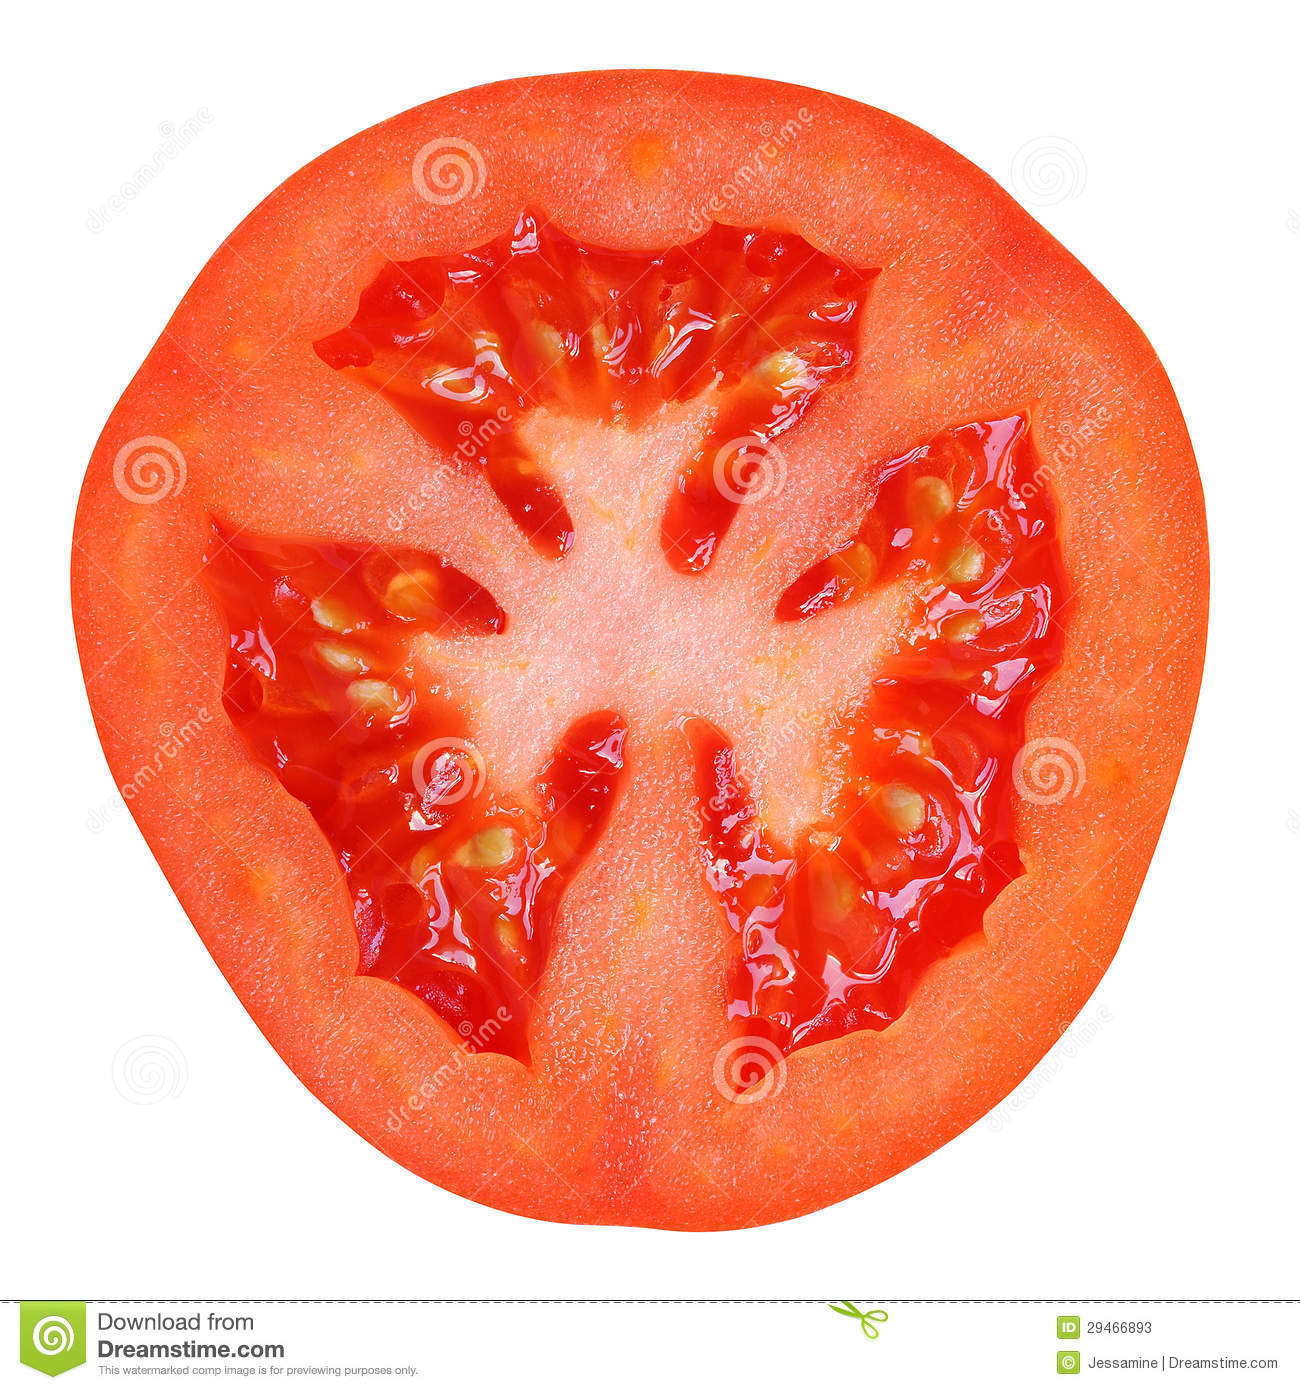 tomato slice stock image image of food half vegetarian 29466893